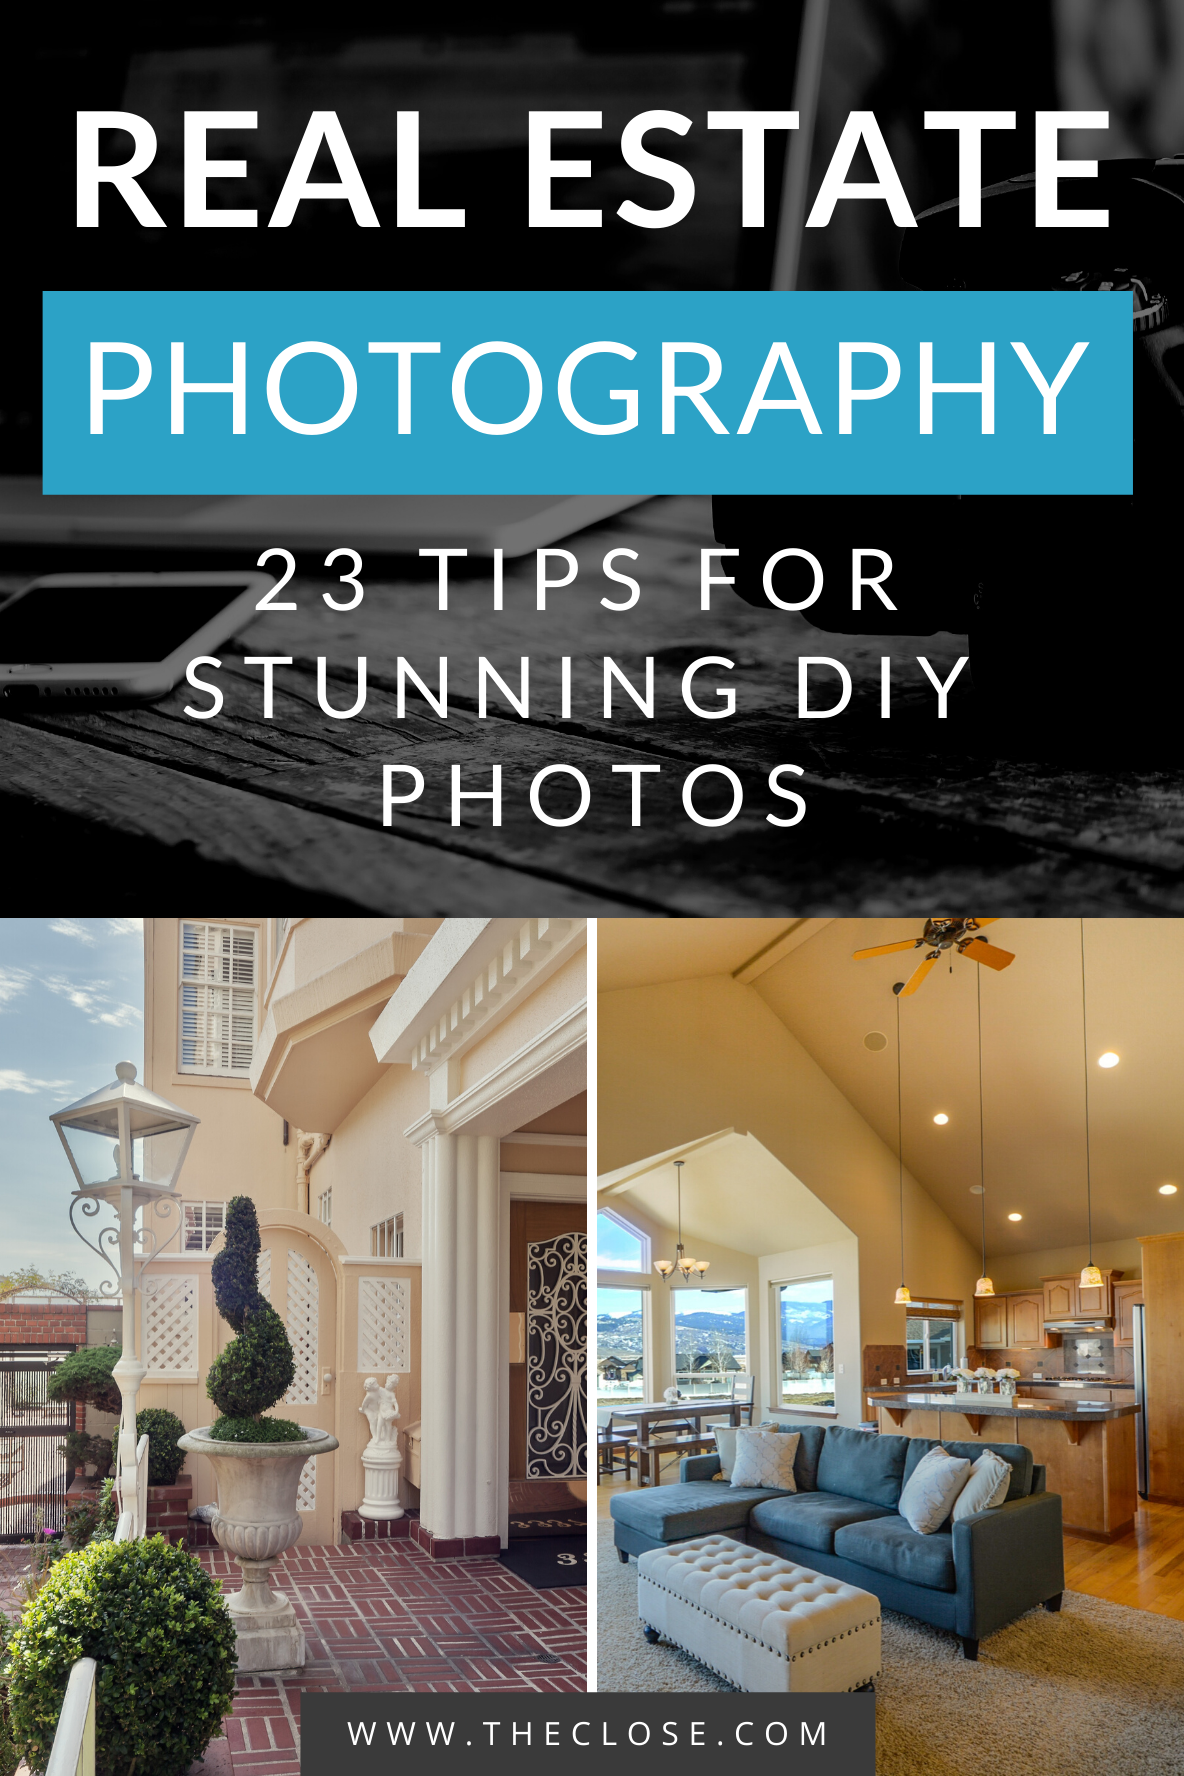 Real Estate Photography: 23 Tips For Stunning DIY